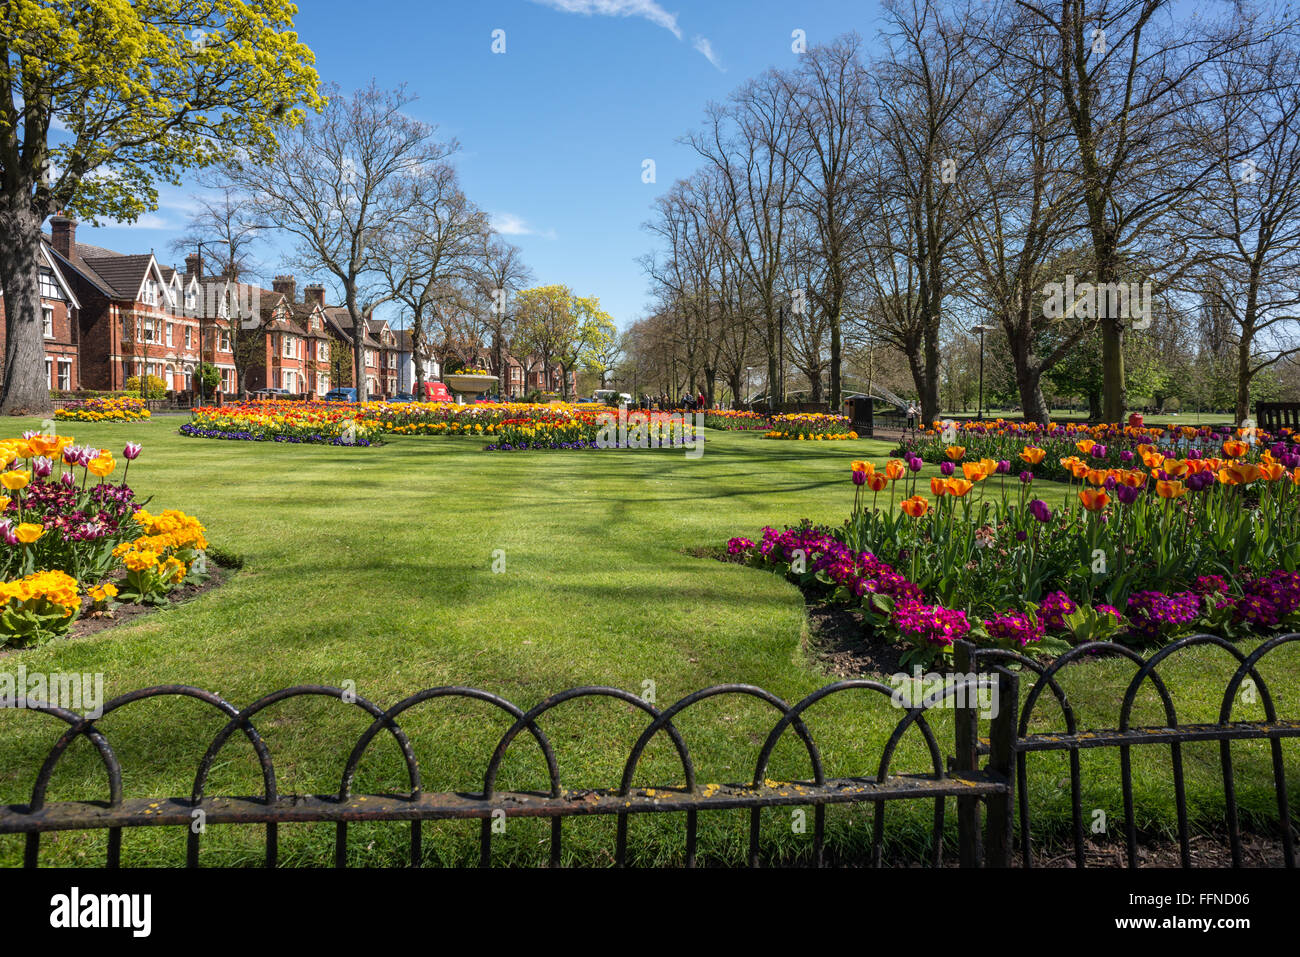 Russell Park gardens, Bedford, Bedfordshire - Stock Image